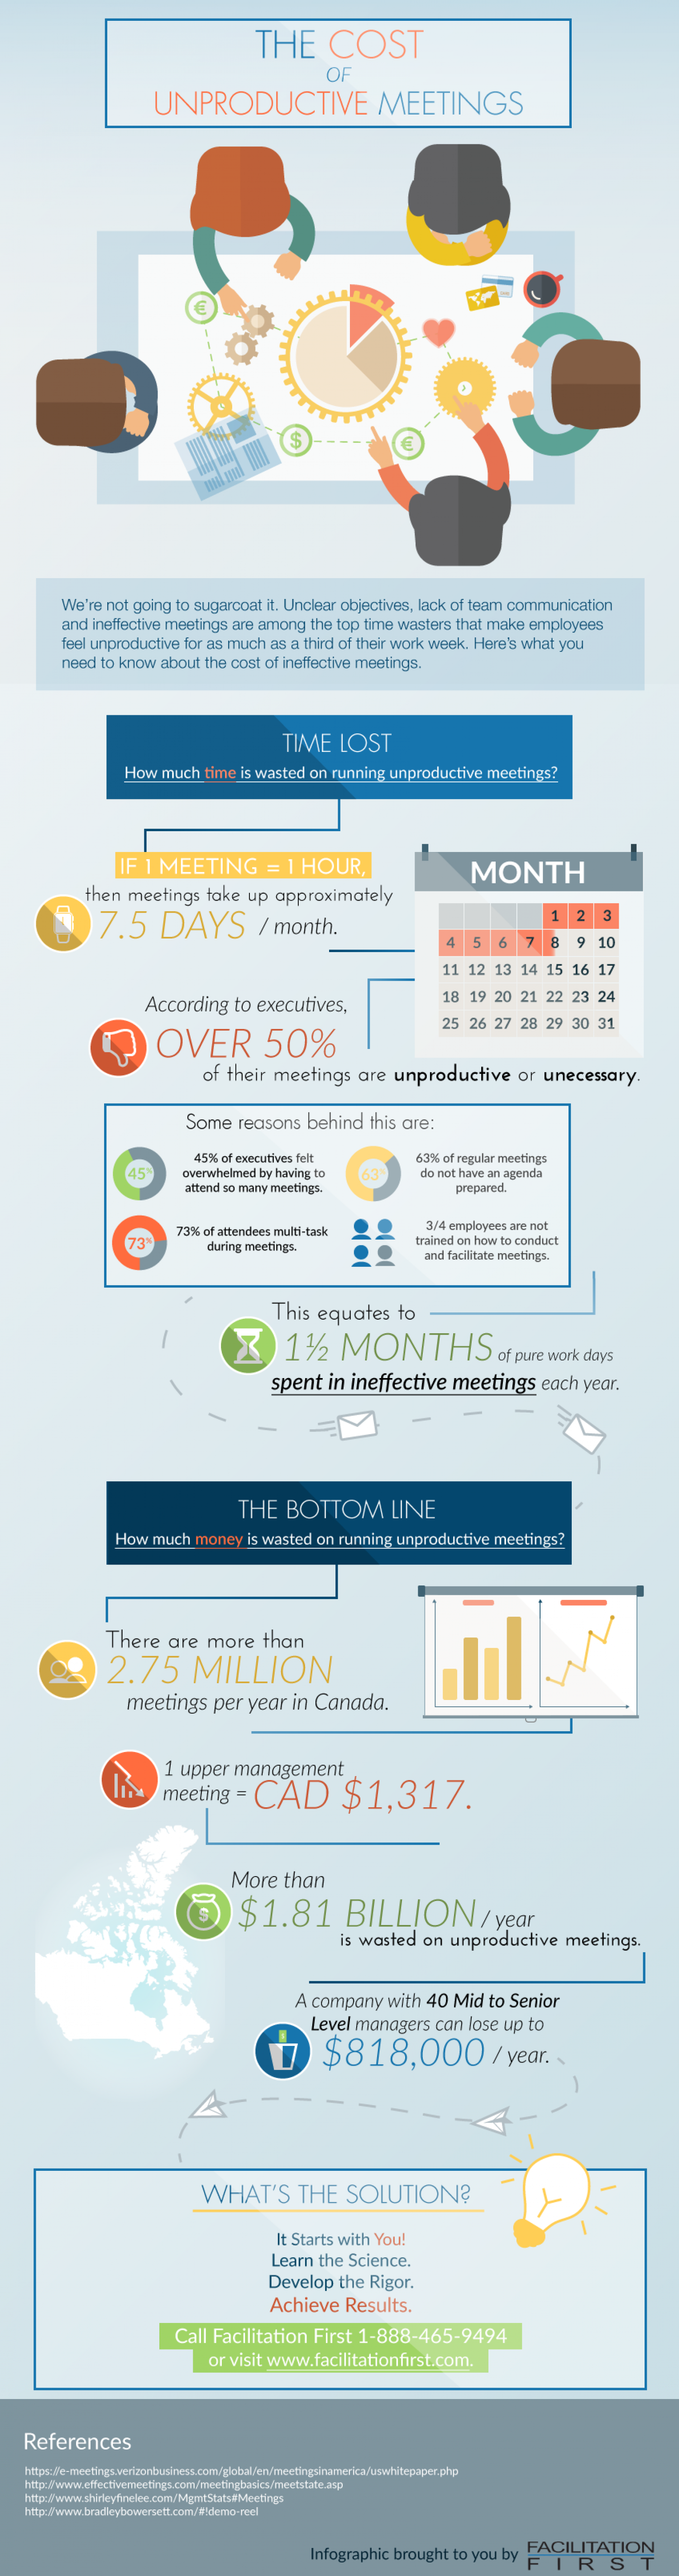 The Cost of Unproductive Meetings Infographic